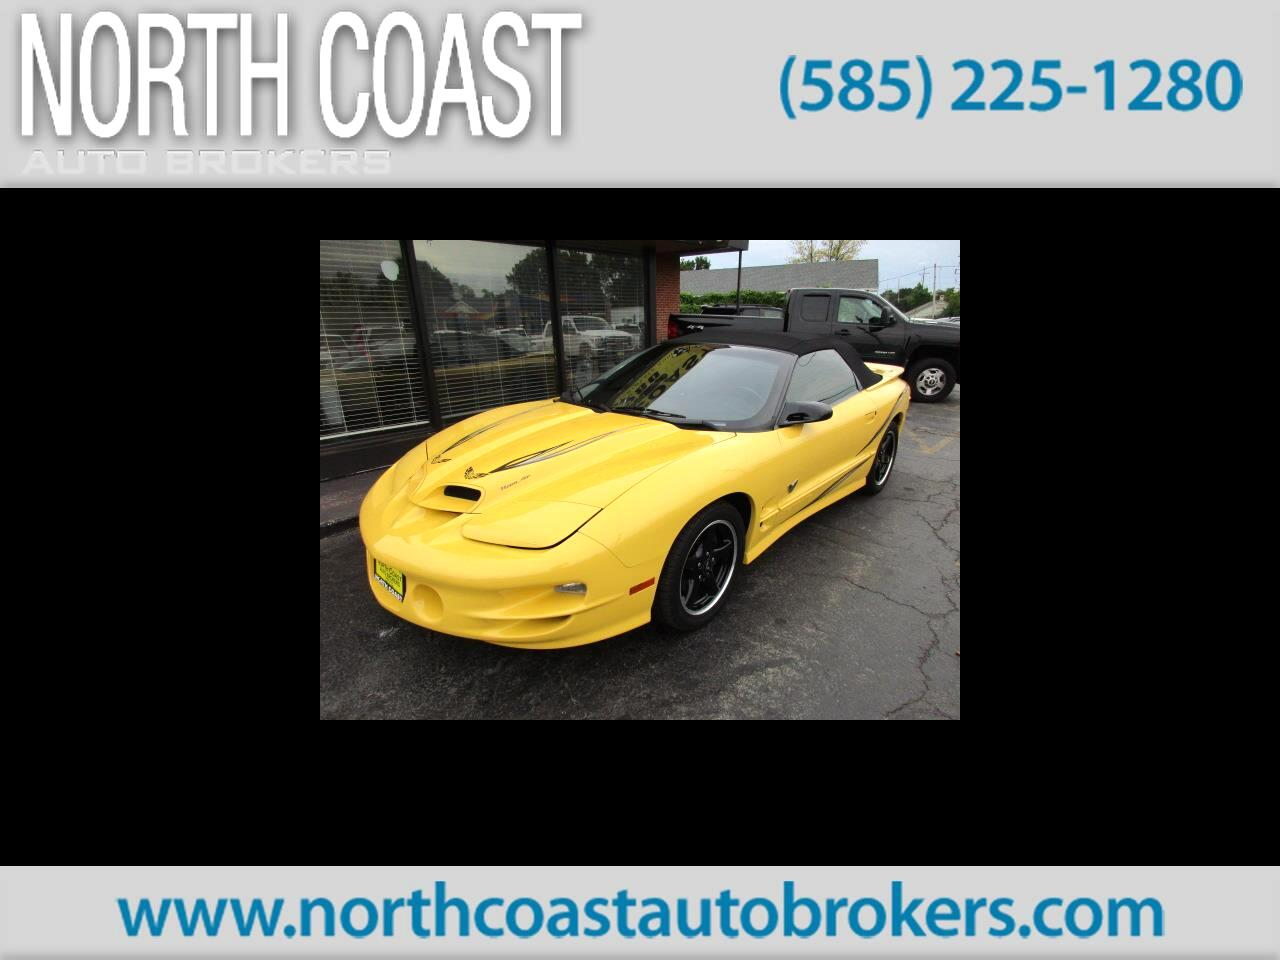 2002 Pontiac Trans Am Convertible